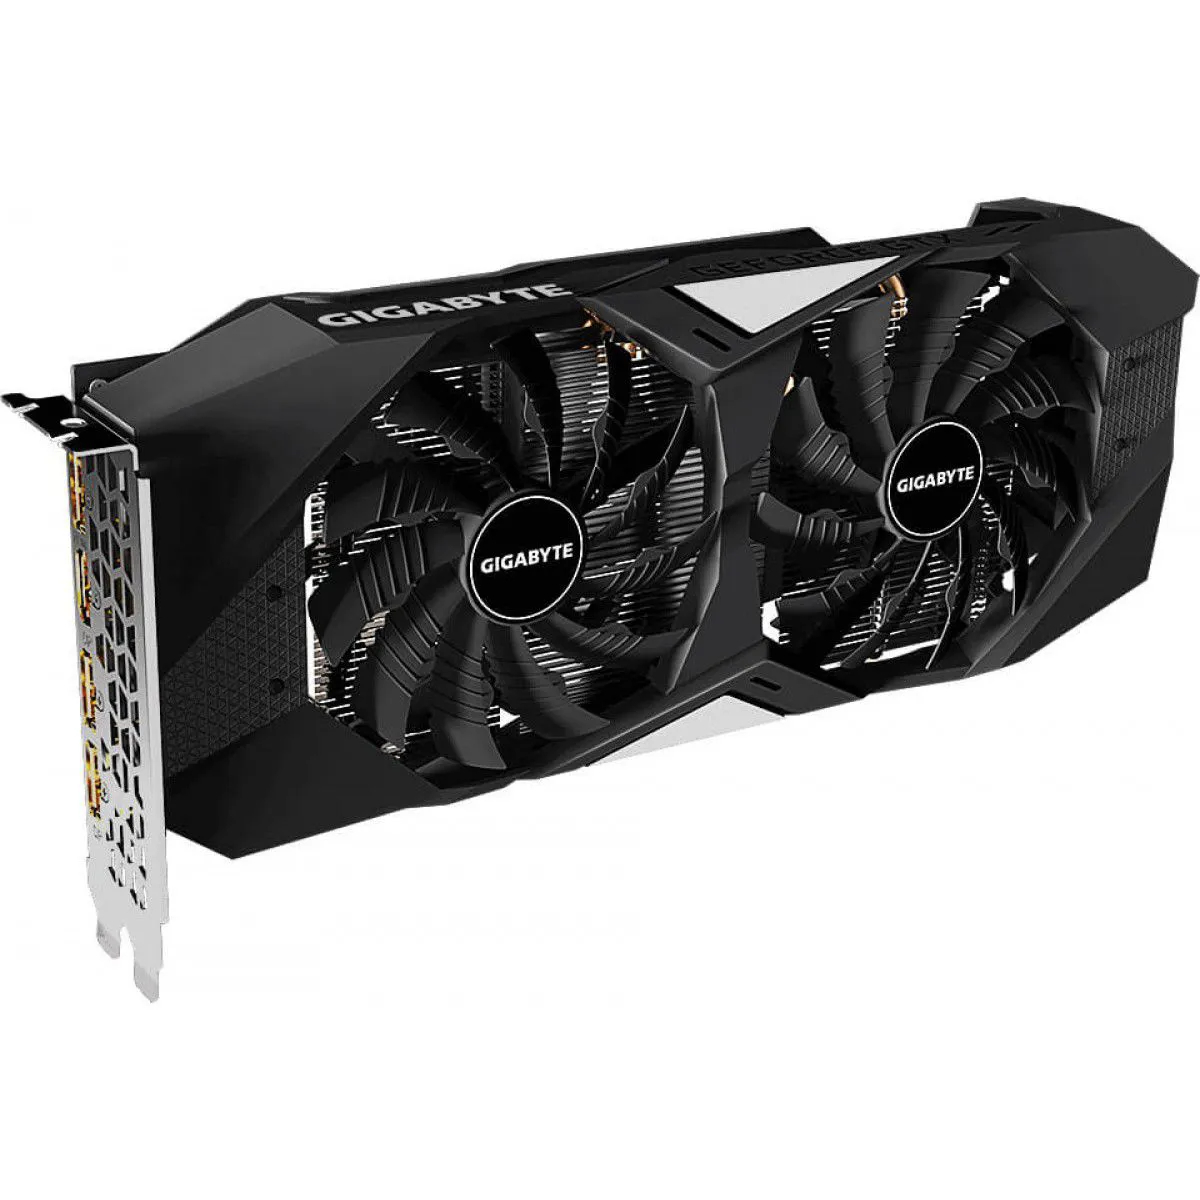 Placa de vídeo Gigabyte GeForce RTX 2060 Super WindForce Oc Dual 8GB GDDR6 256Bit GV-N206SWF2OC-8GD